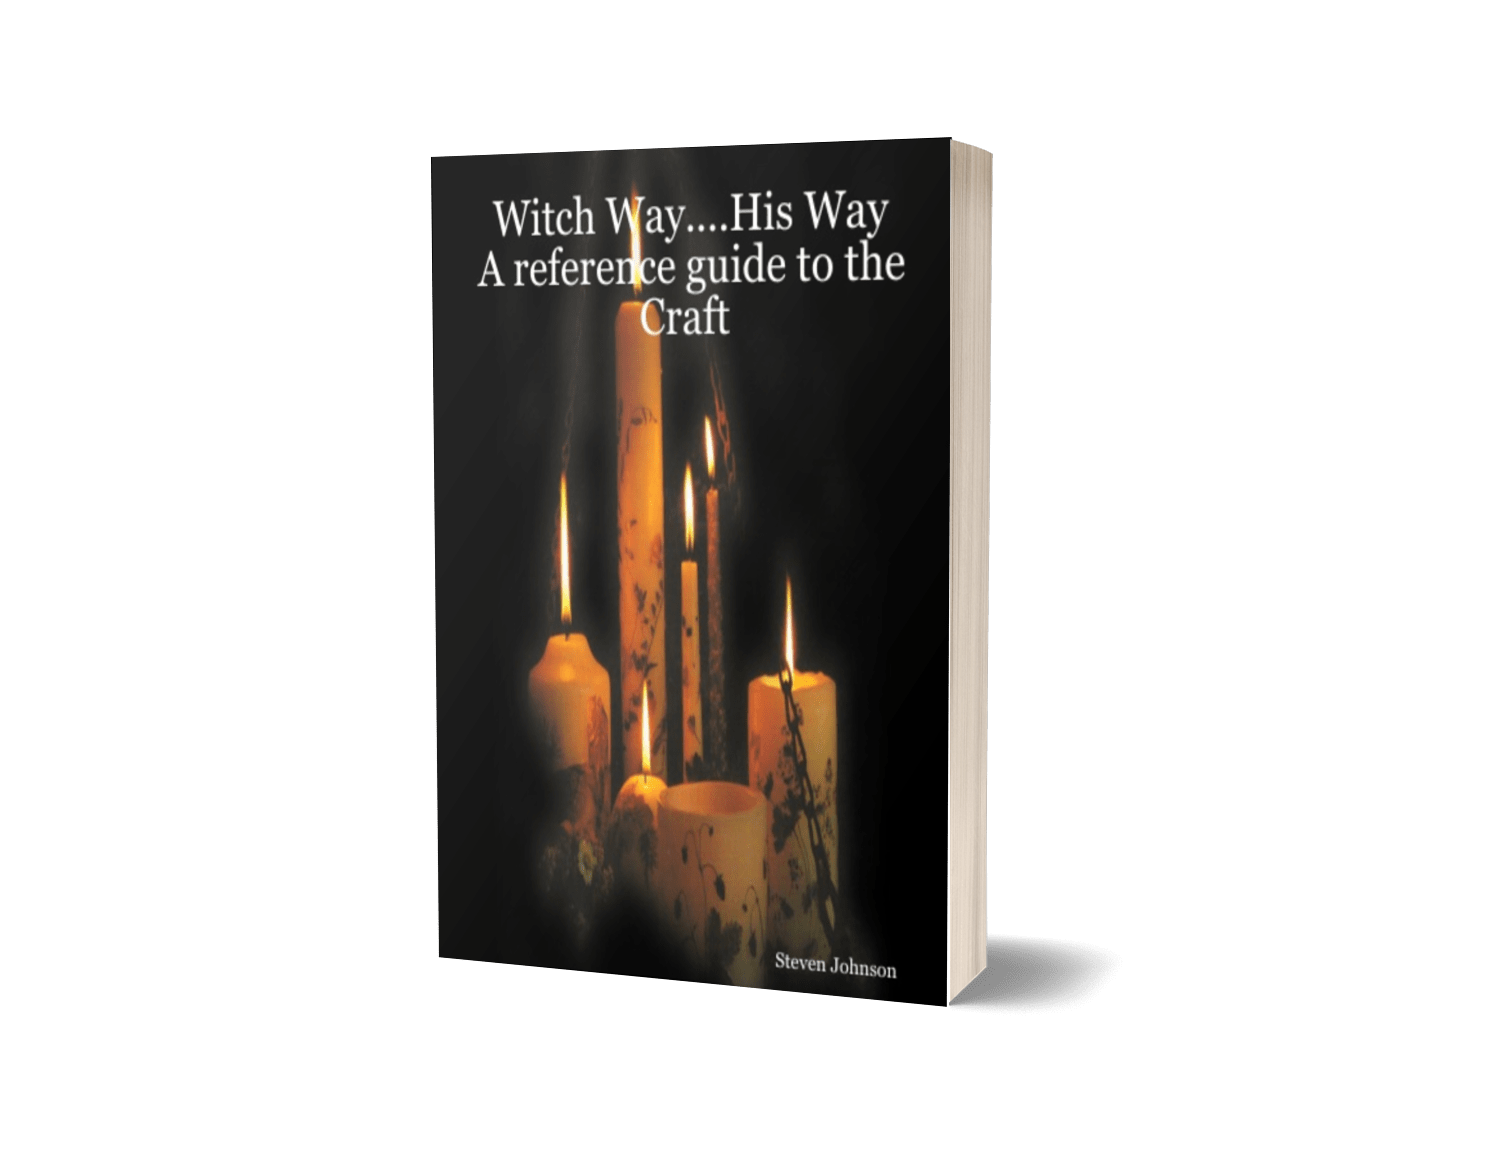 Witch Way....His Way A reference guide to the Craft